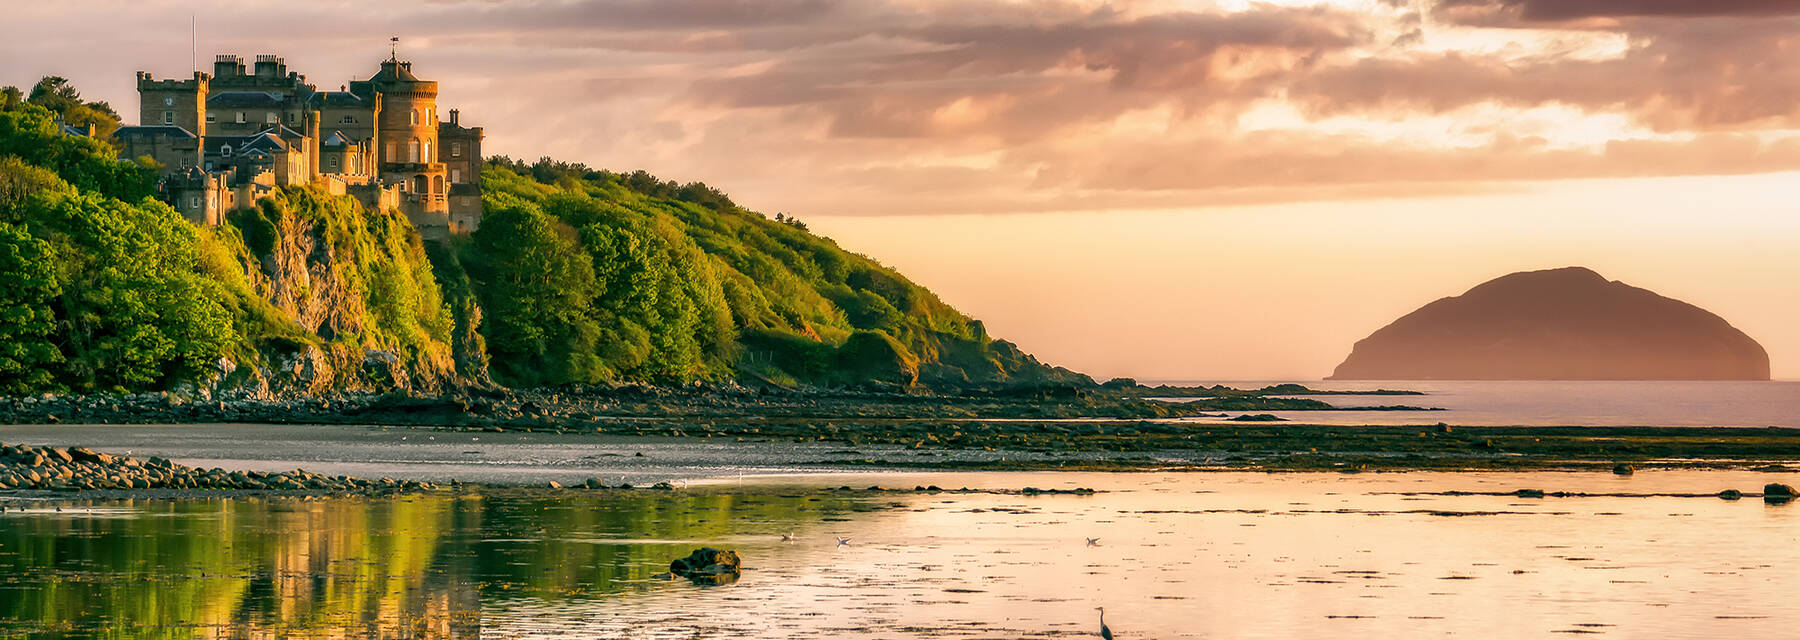 Culzean Castle at sunset